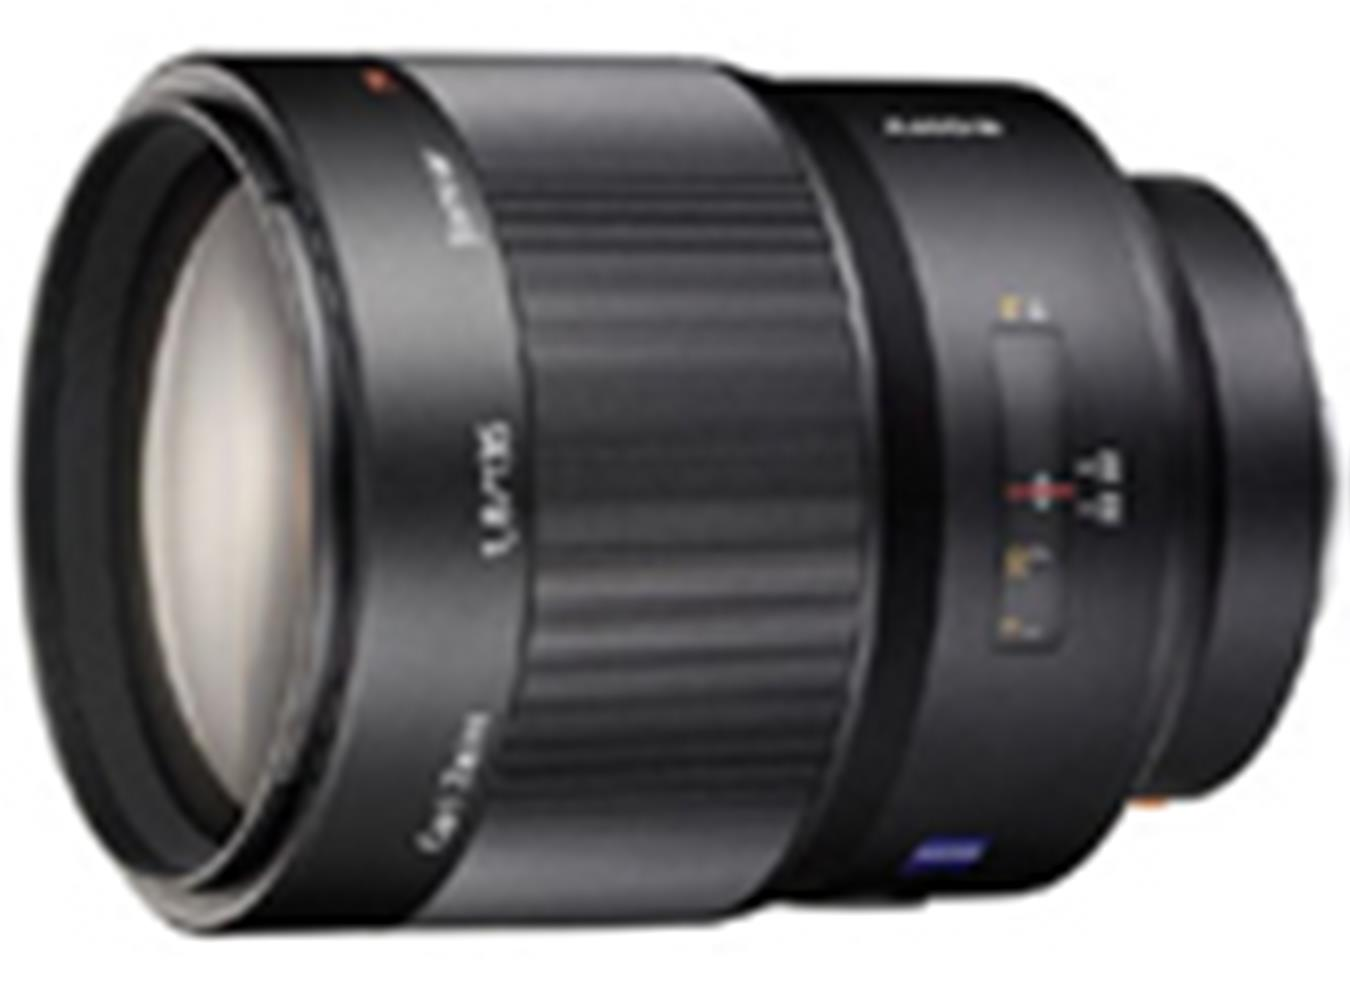 SONY ALPHA 135MM F1.8 SONNAR T* LENS